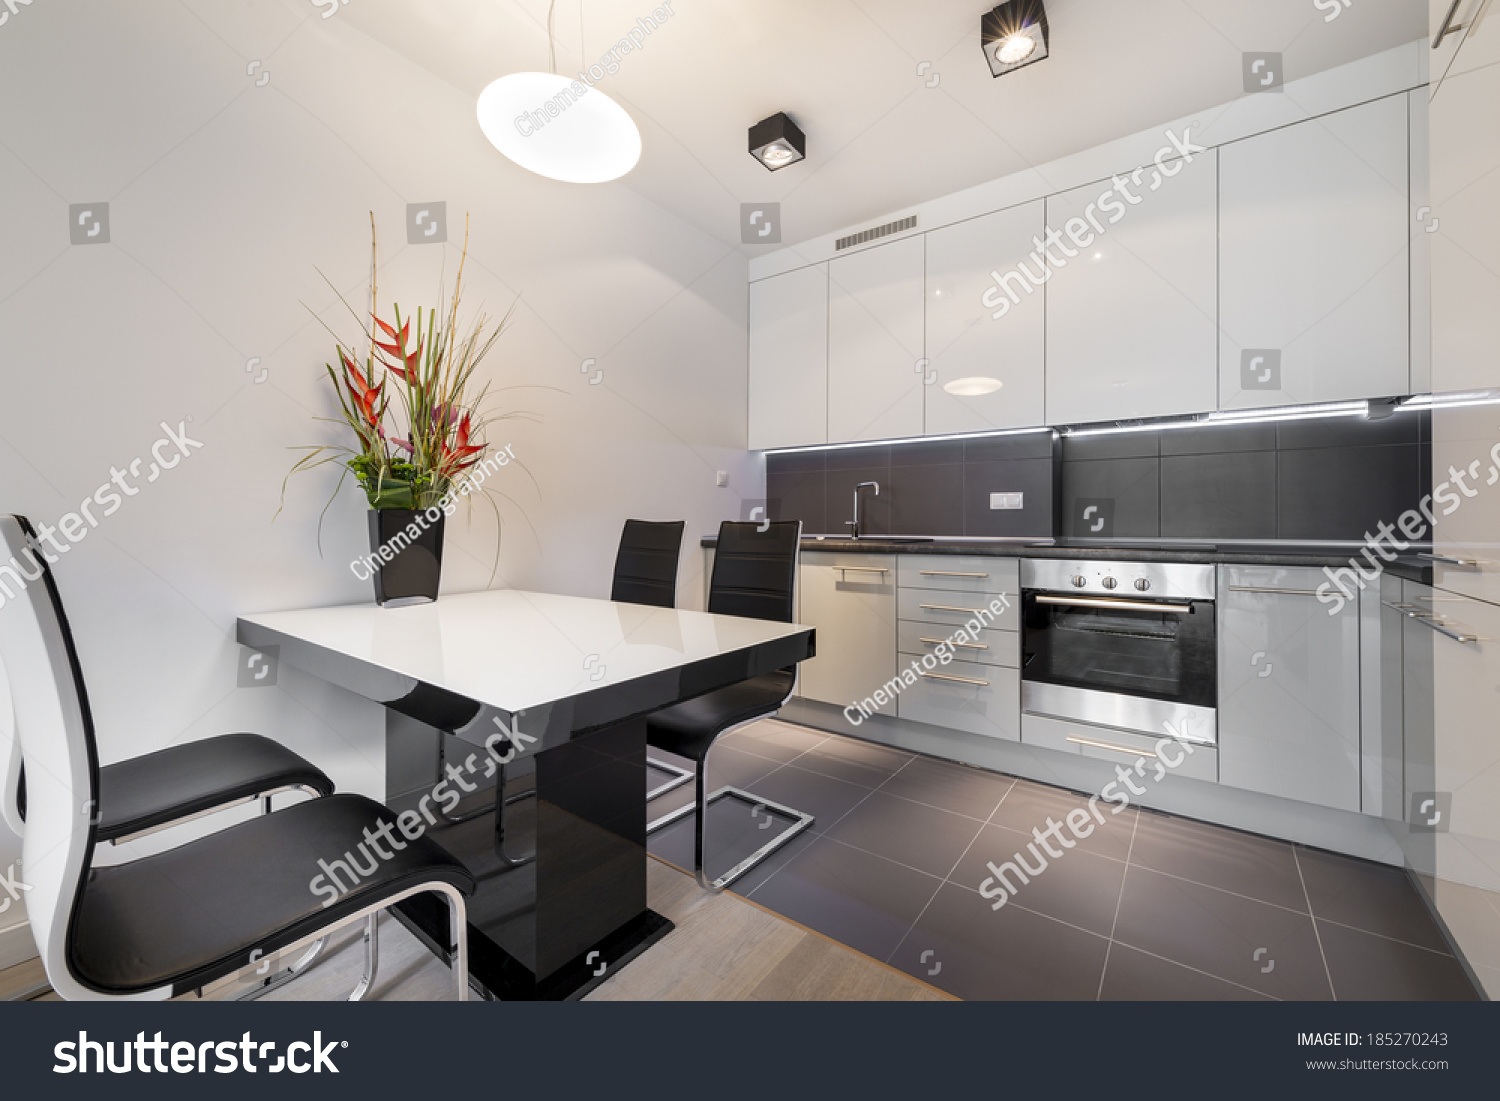 Gray Tile Floor Kitchen Modern Kitchen With Gray Tile Floor And White Table Stock Photo